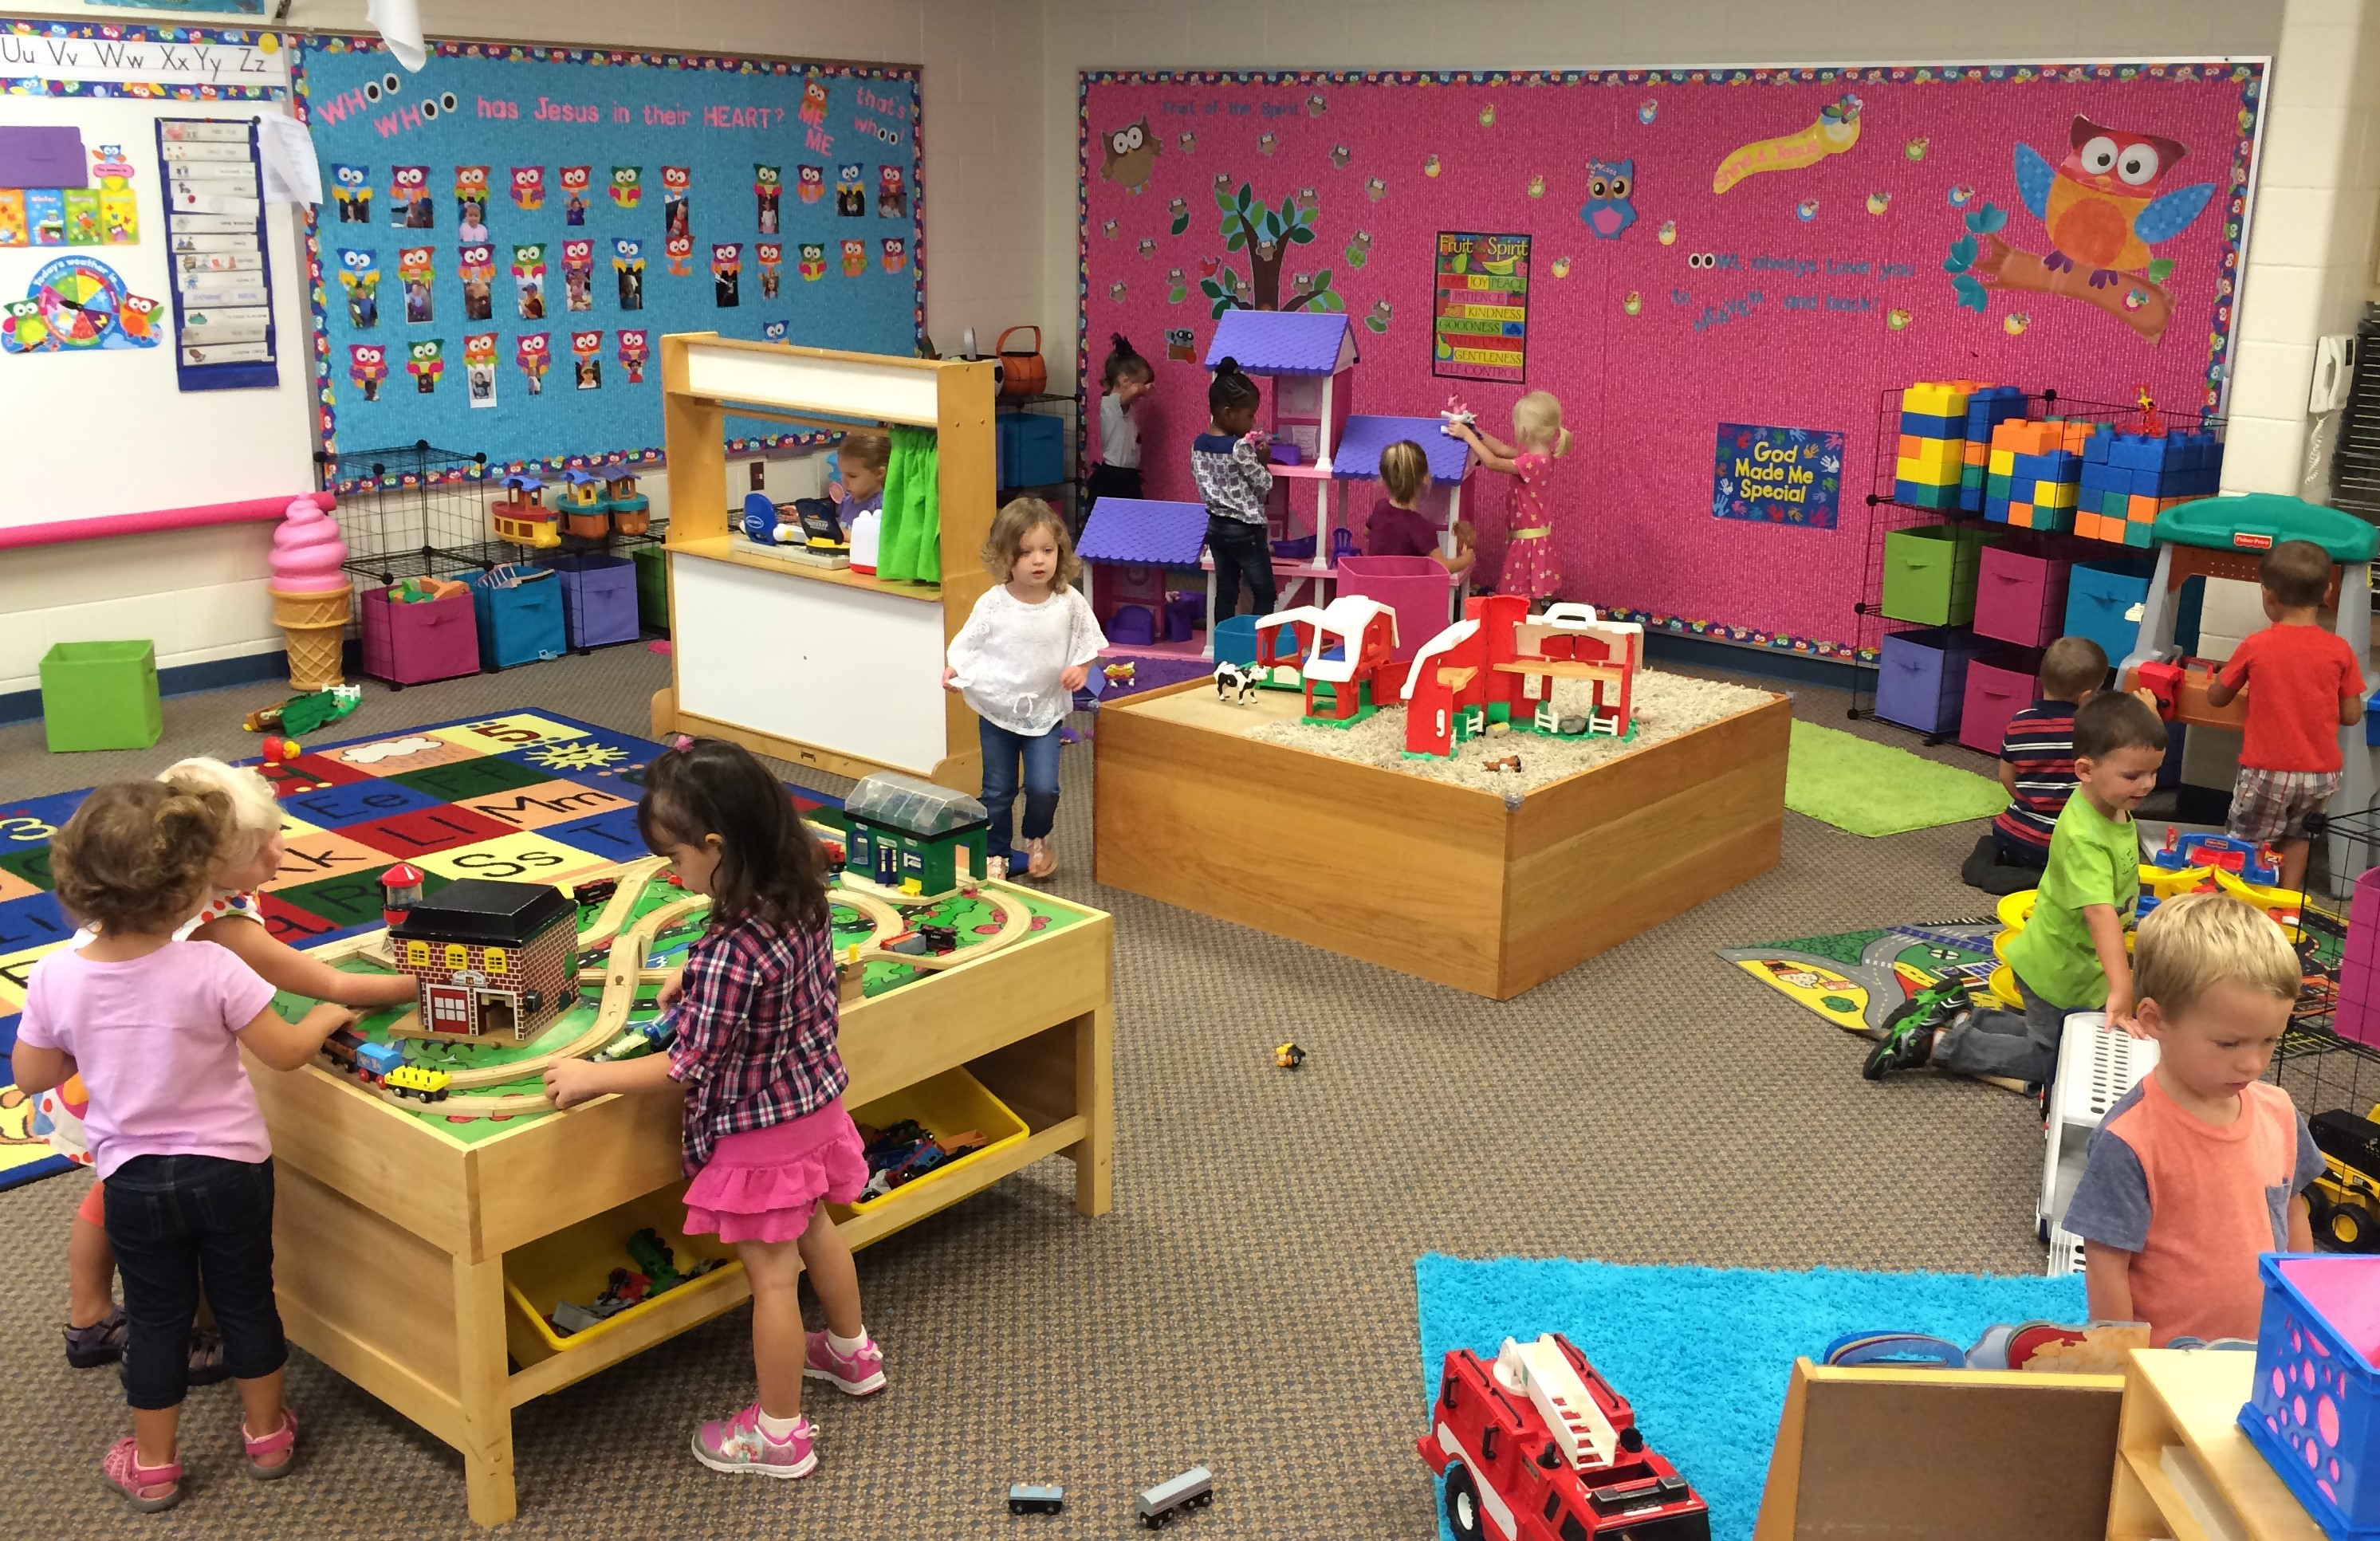 Best Daycare Centers Near Me – Wonderful Image Gallery